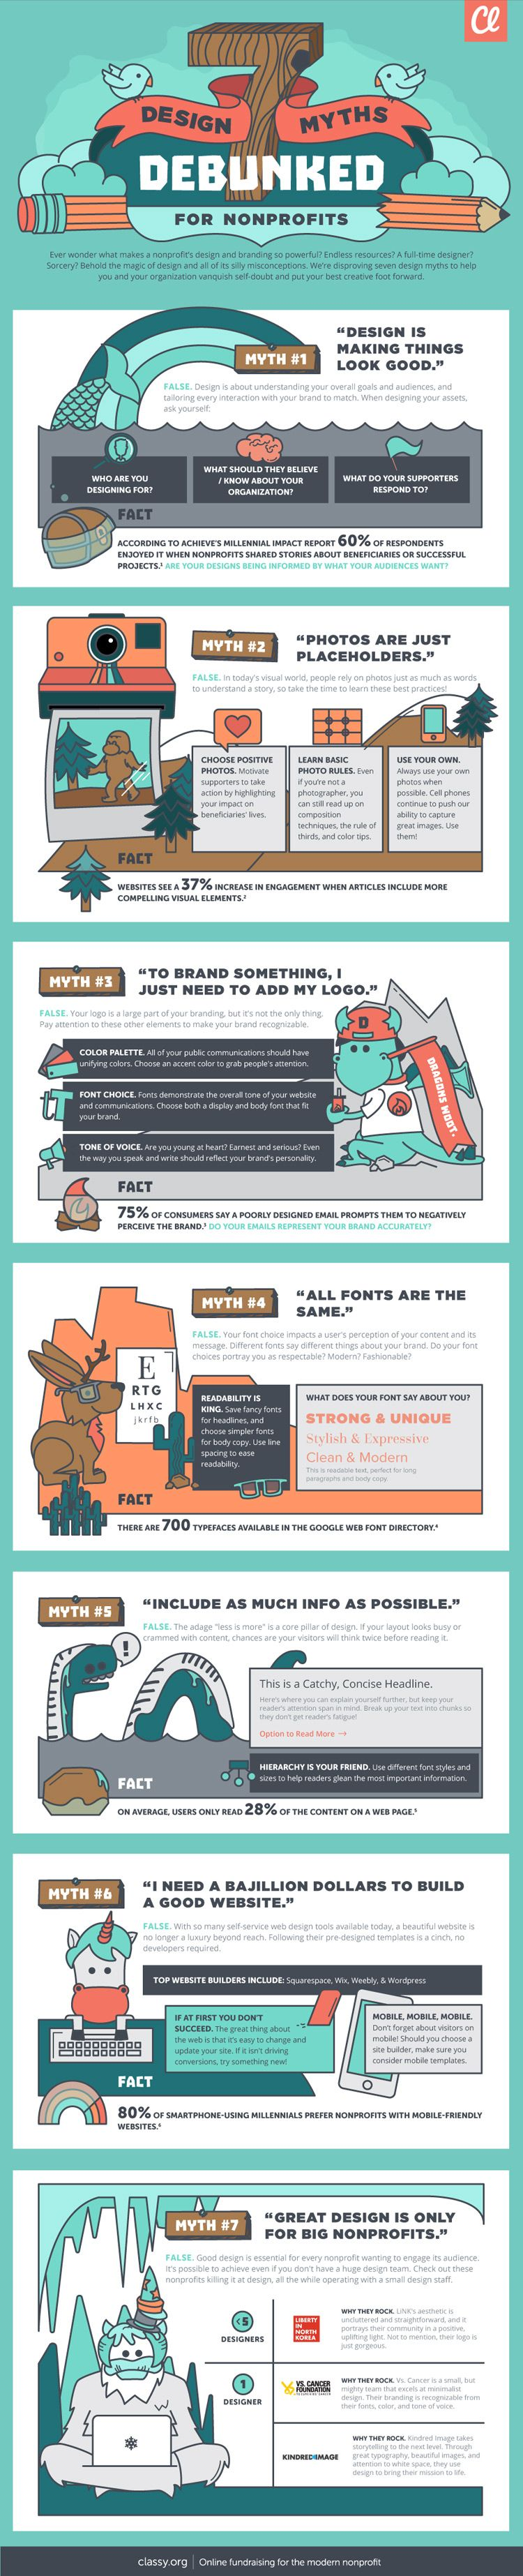 Infographic 7 Design Myths Debunked For Nonprofits Infographic Non Profit Fundraising